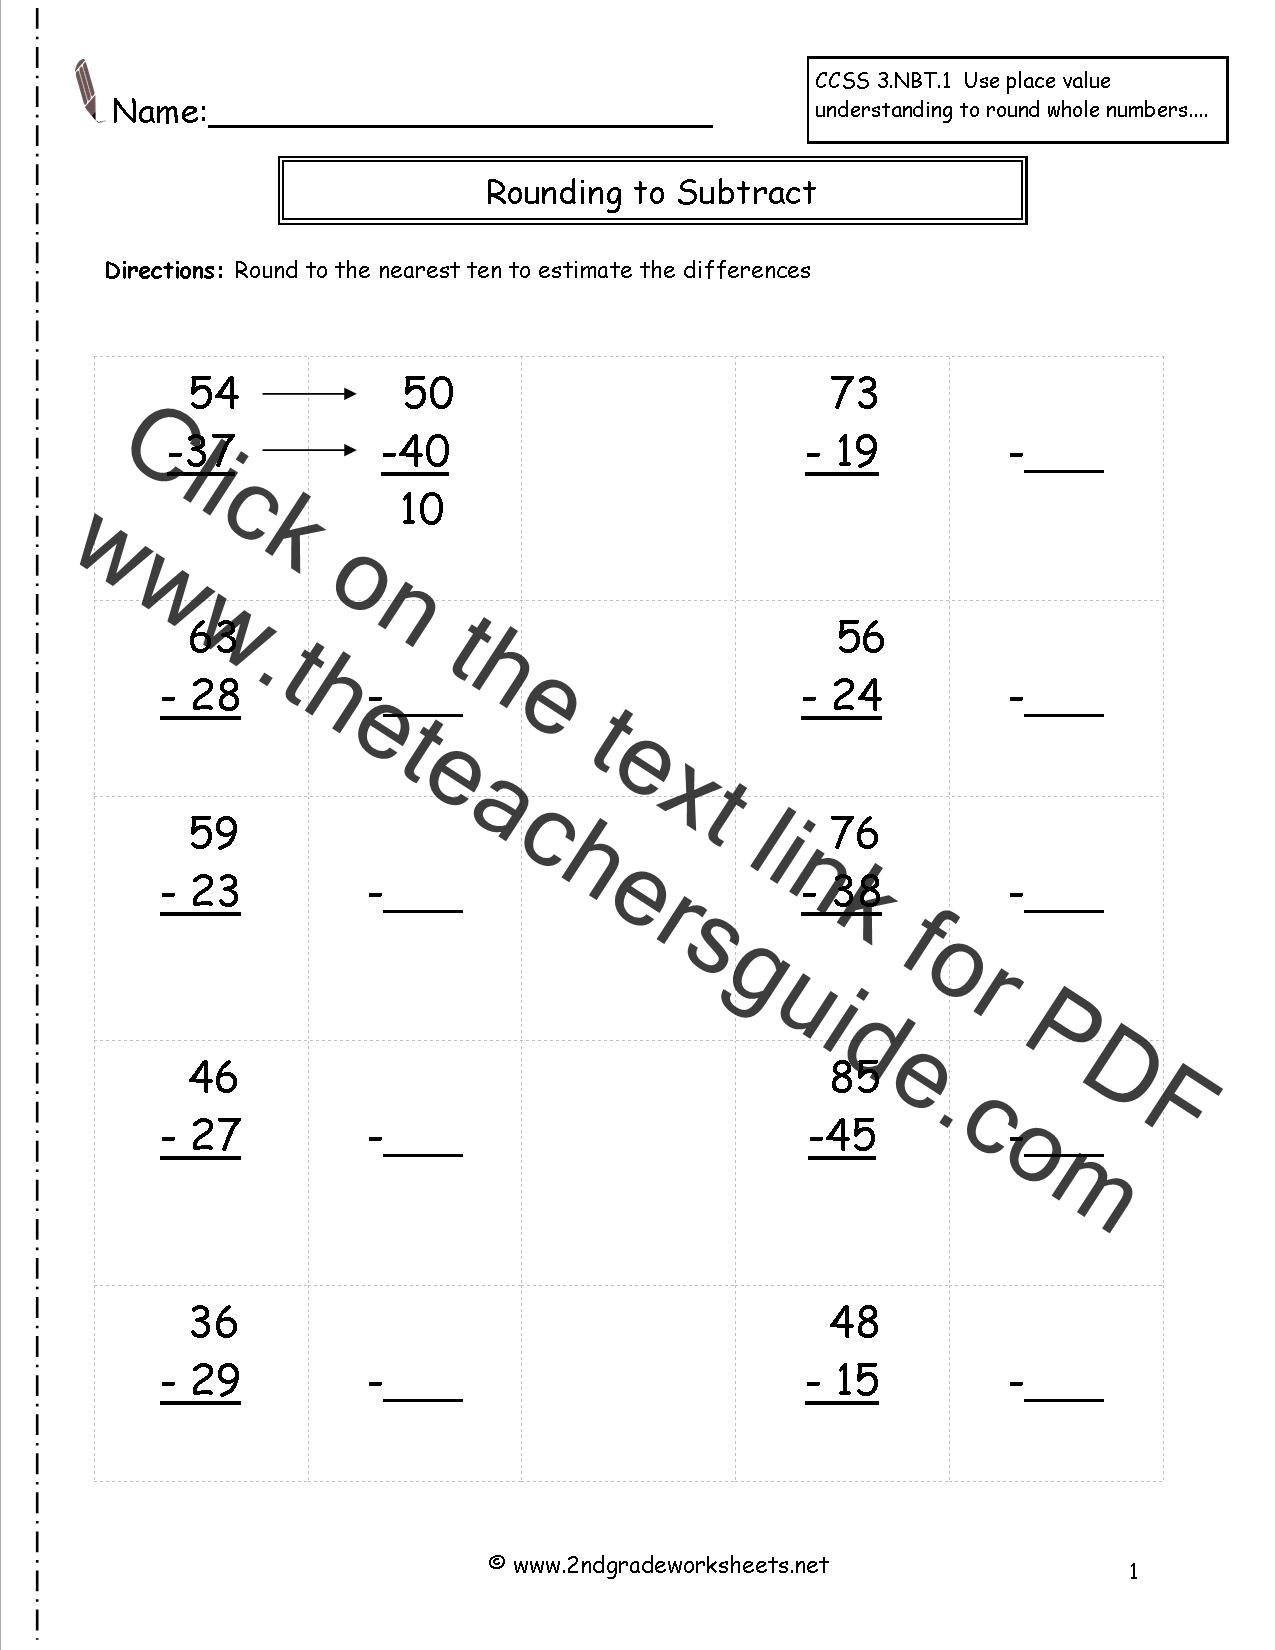 worksheet Estimating Sums rounding whole numbers worksheets to estimate the differences